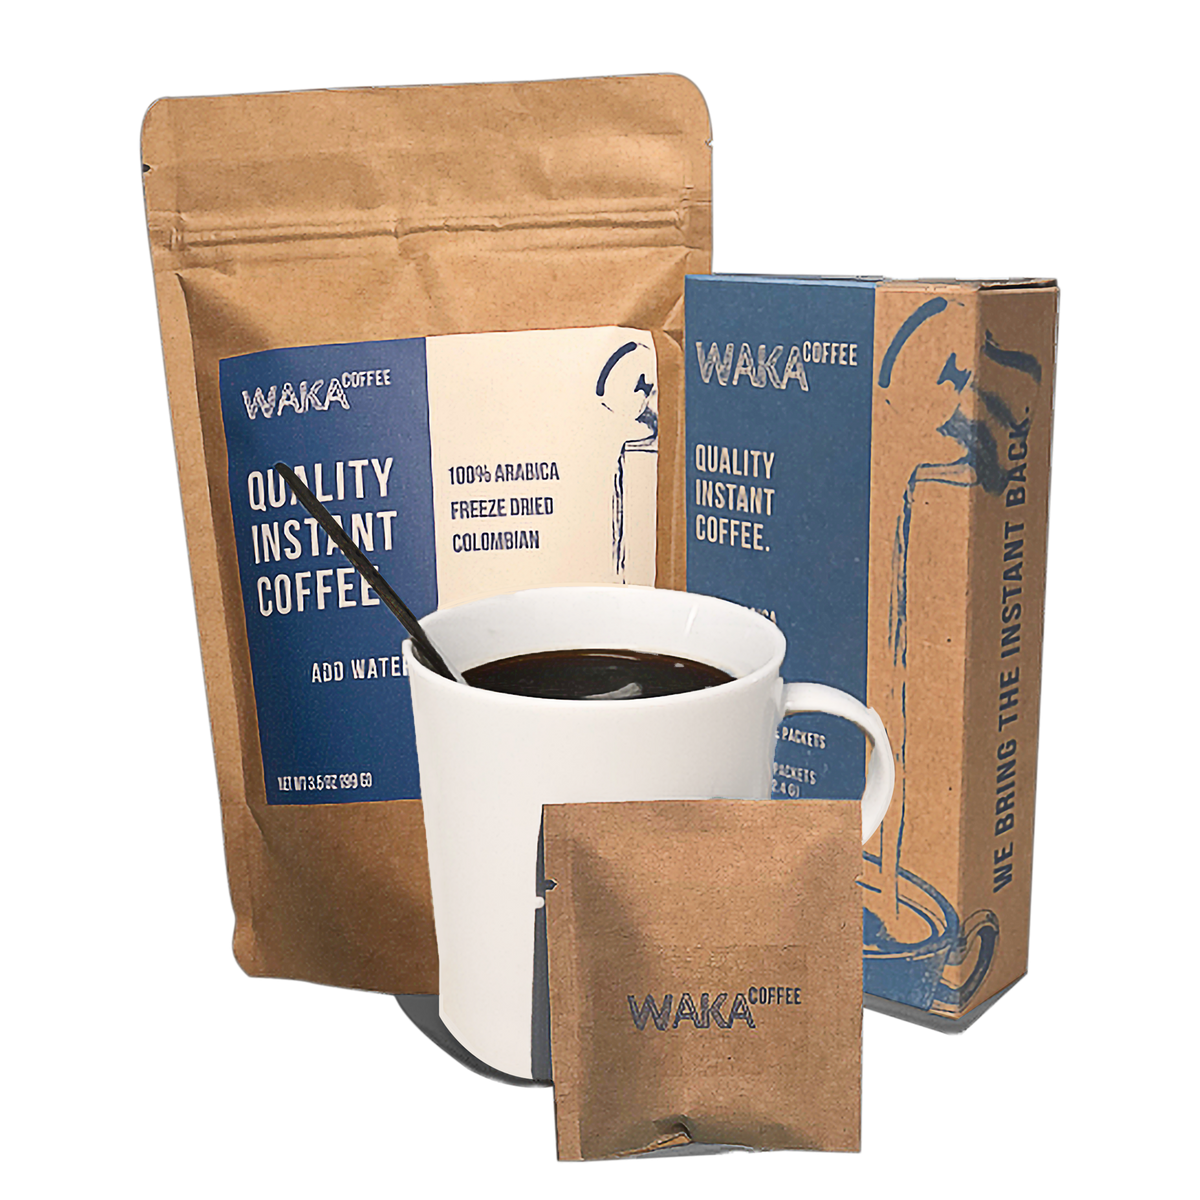 Waka Coffee is the best tasting instant coffee